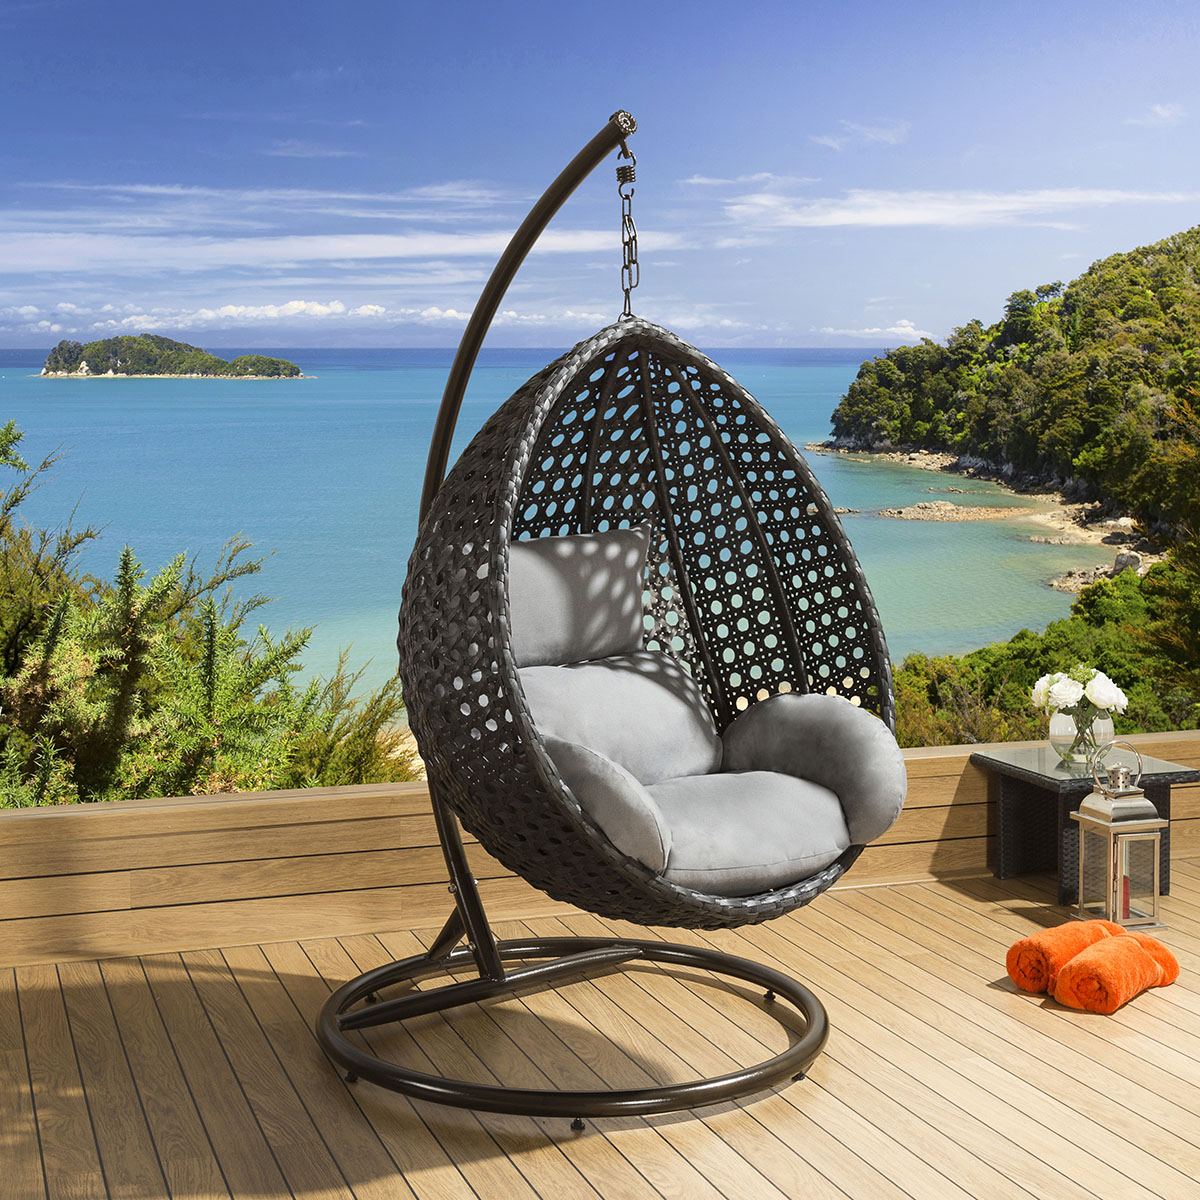 Black Hanging Chair Luxury Outdoor Garden Hanging Chair Black Rattan Grey